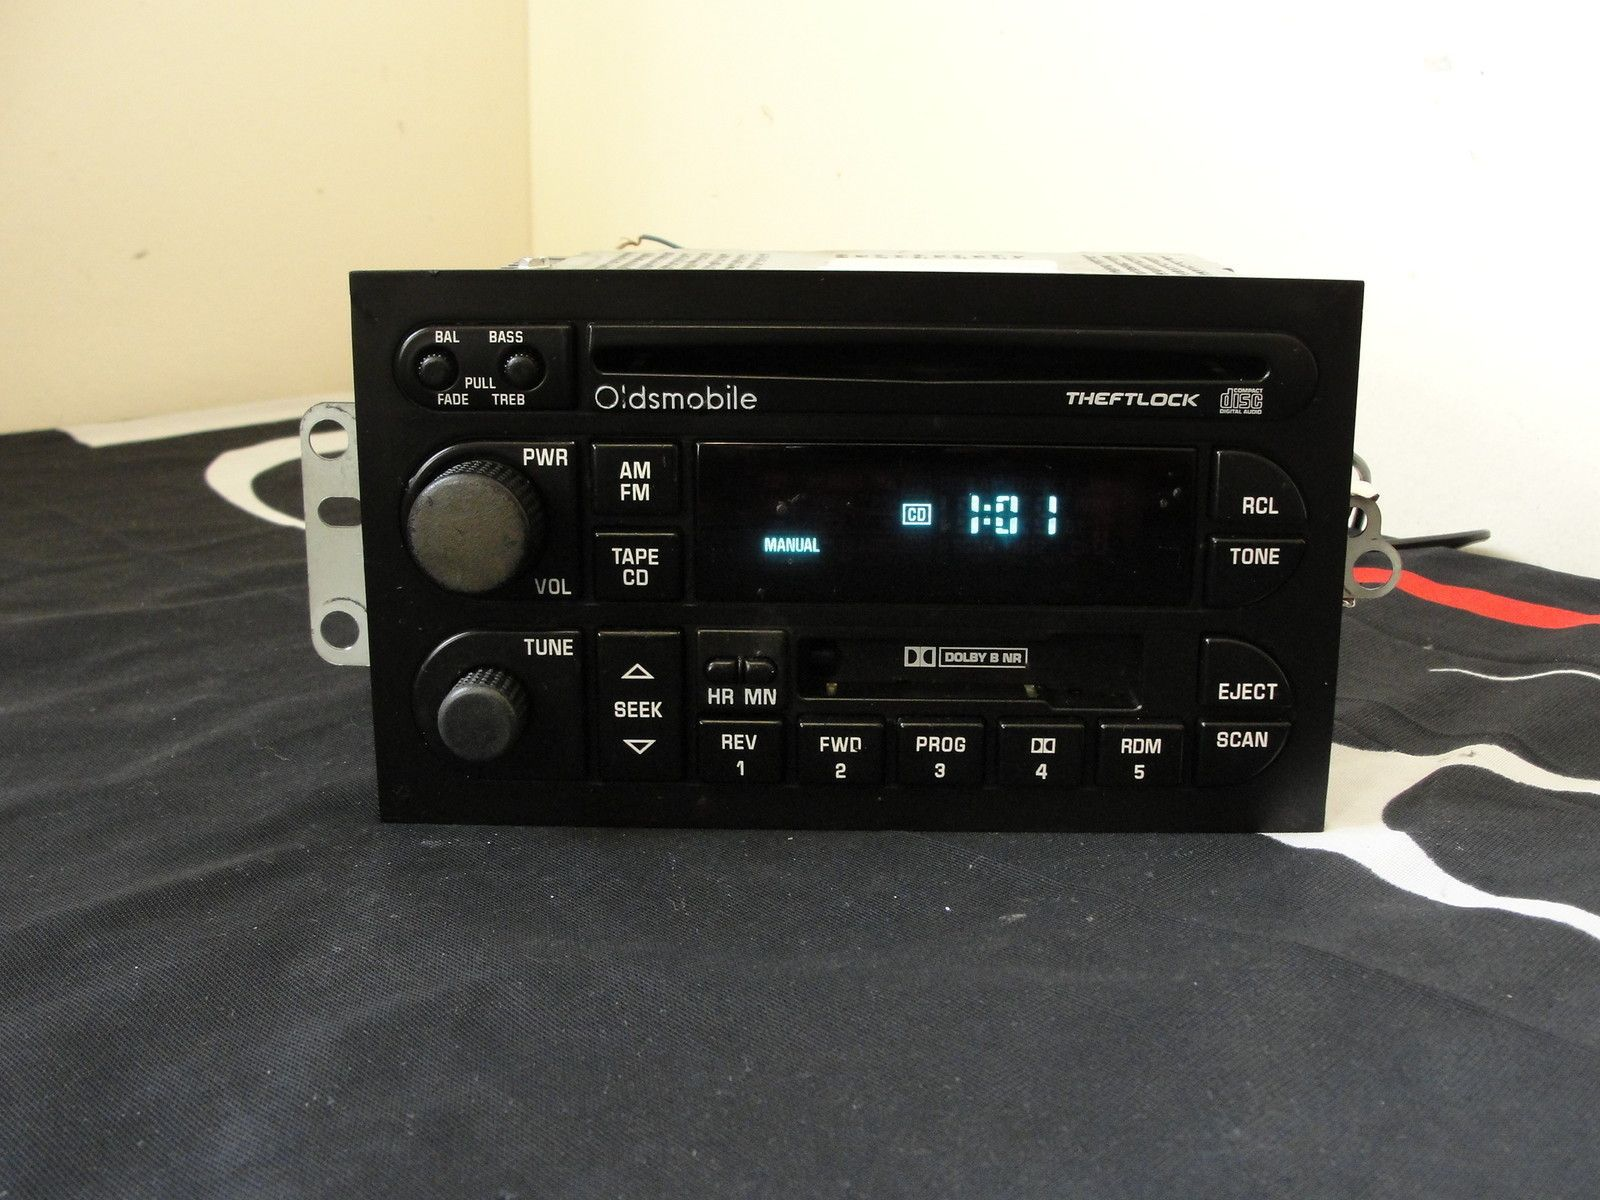 Wiring Diagram For Delco Car Stereo : Delco radio cd player wiring camaro bose stereo